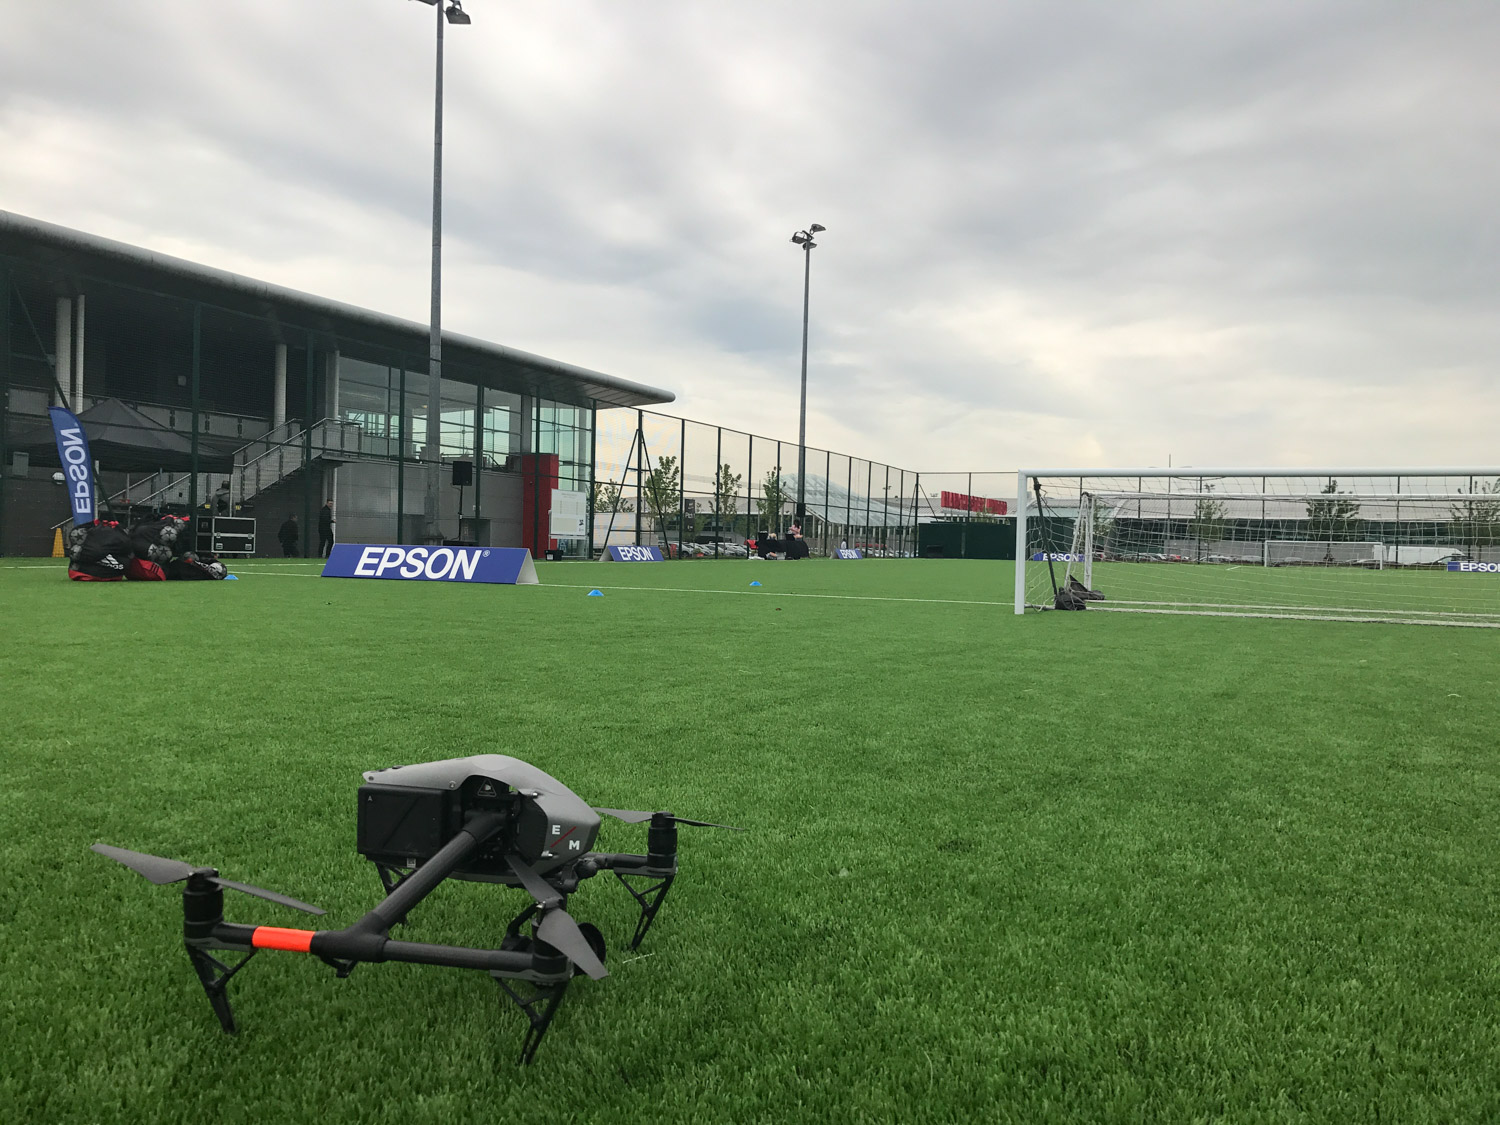 drone_filming_aerial_imagery_north_wales_mufc-2.jpg